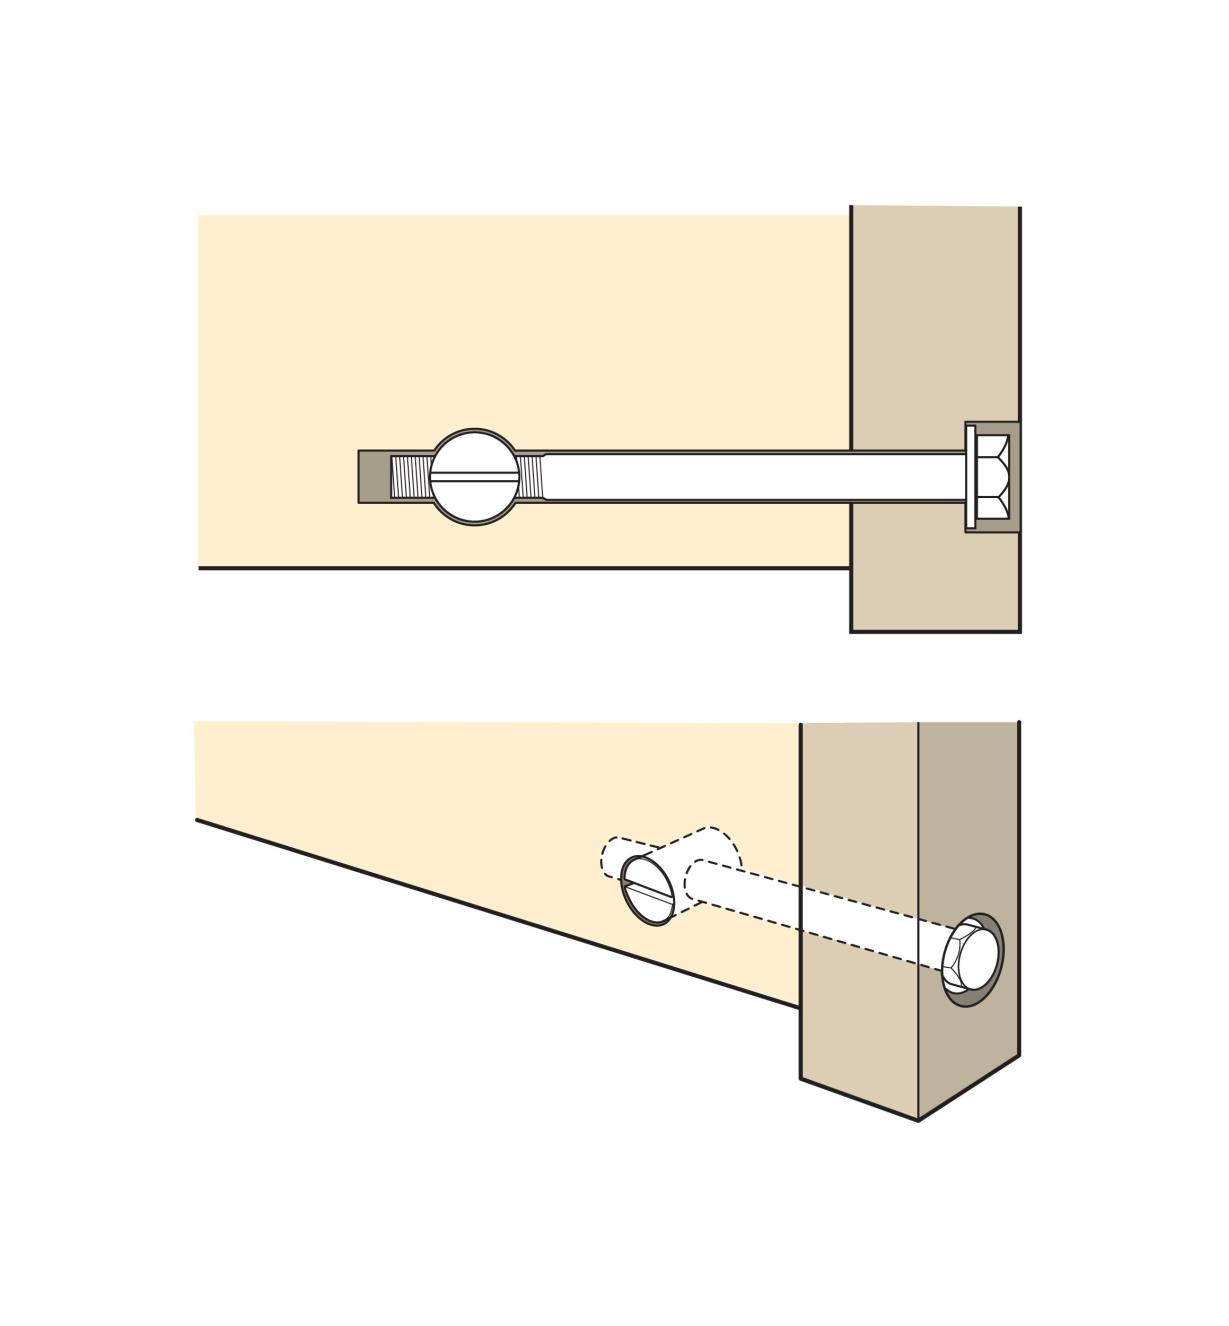 Cutaway illustration of fastener in use